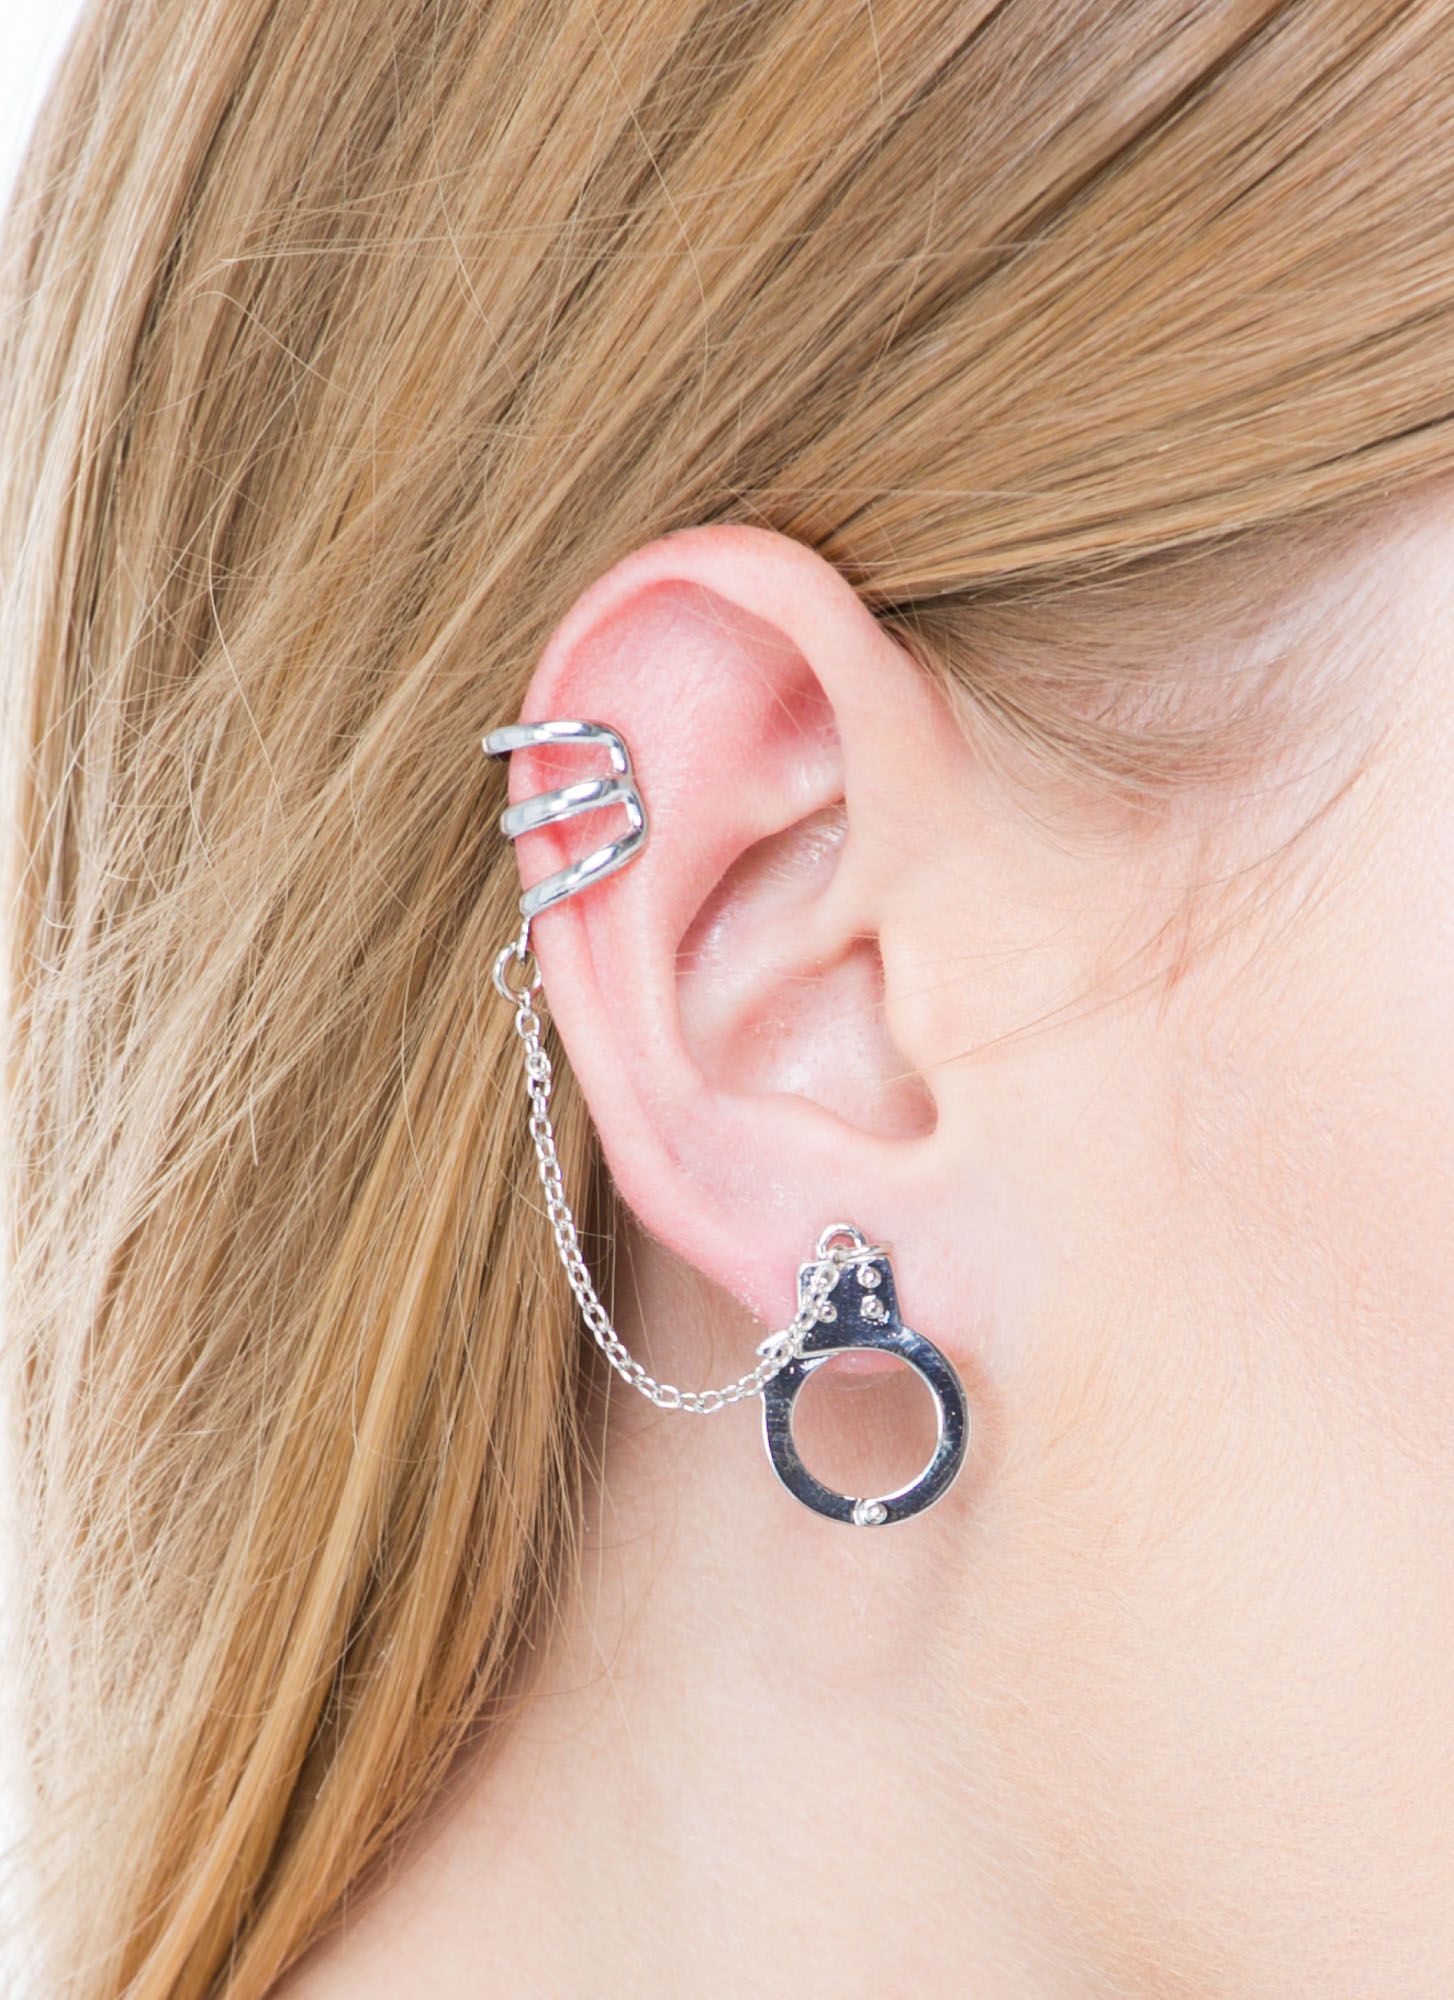 Jailbreak Handcuff Earring And Cuff Set SILVER